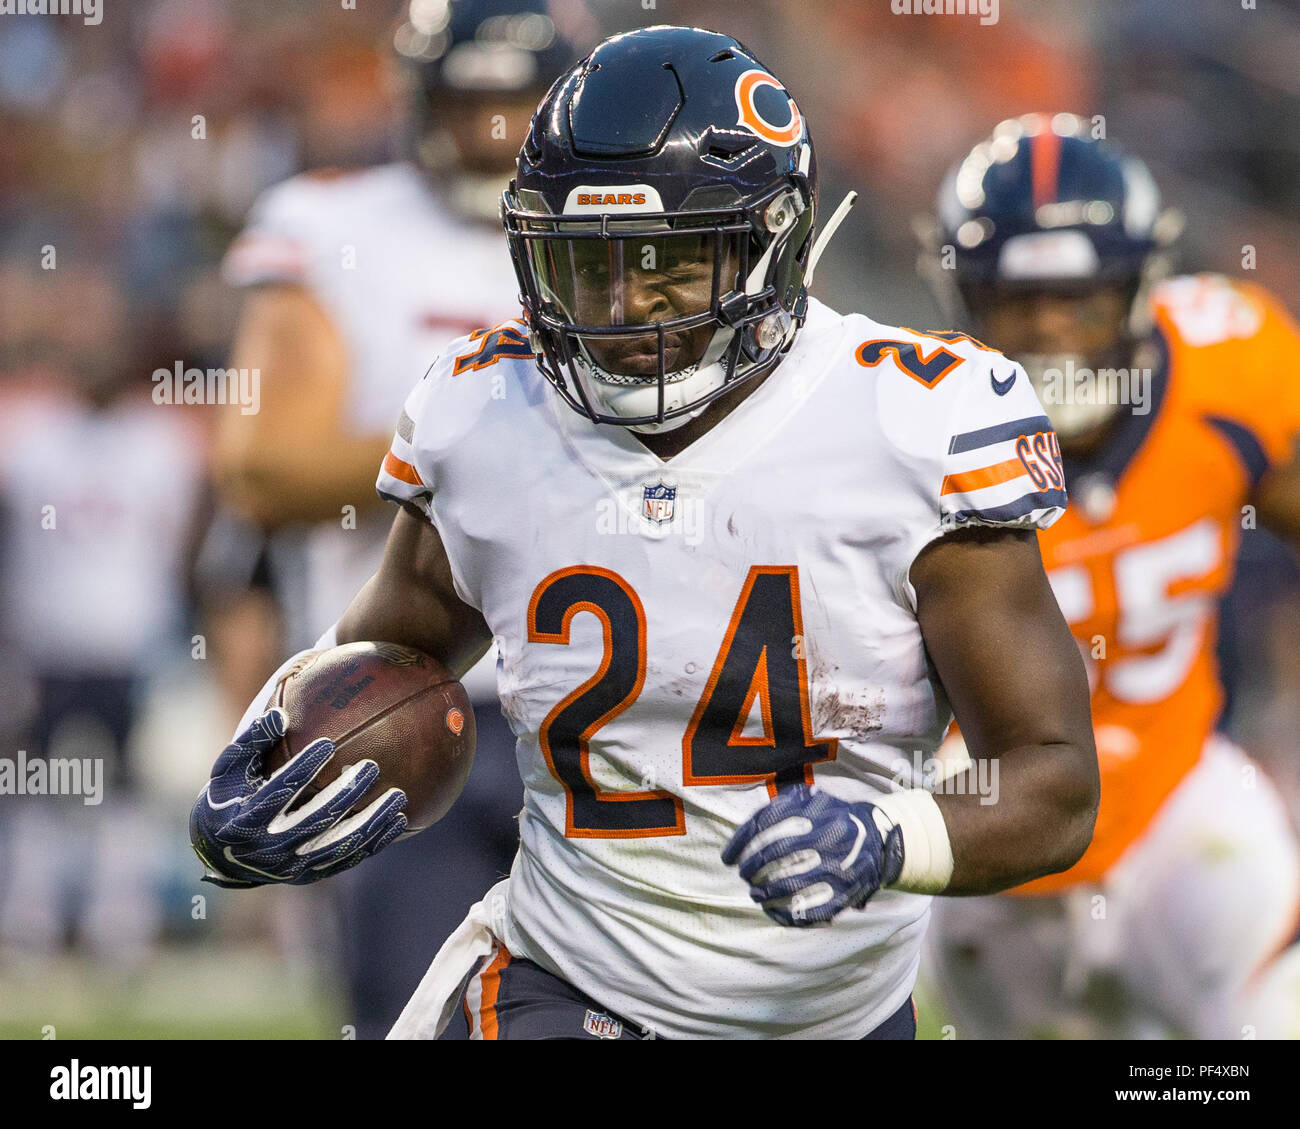 Colorado, USA. 18 August 2018. Chicago Bears Running Back